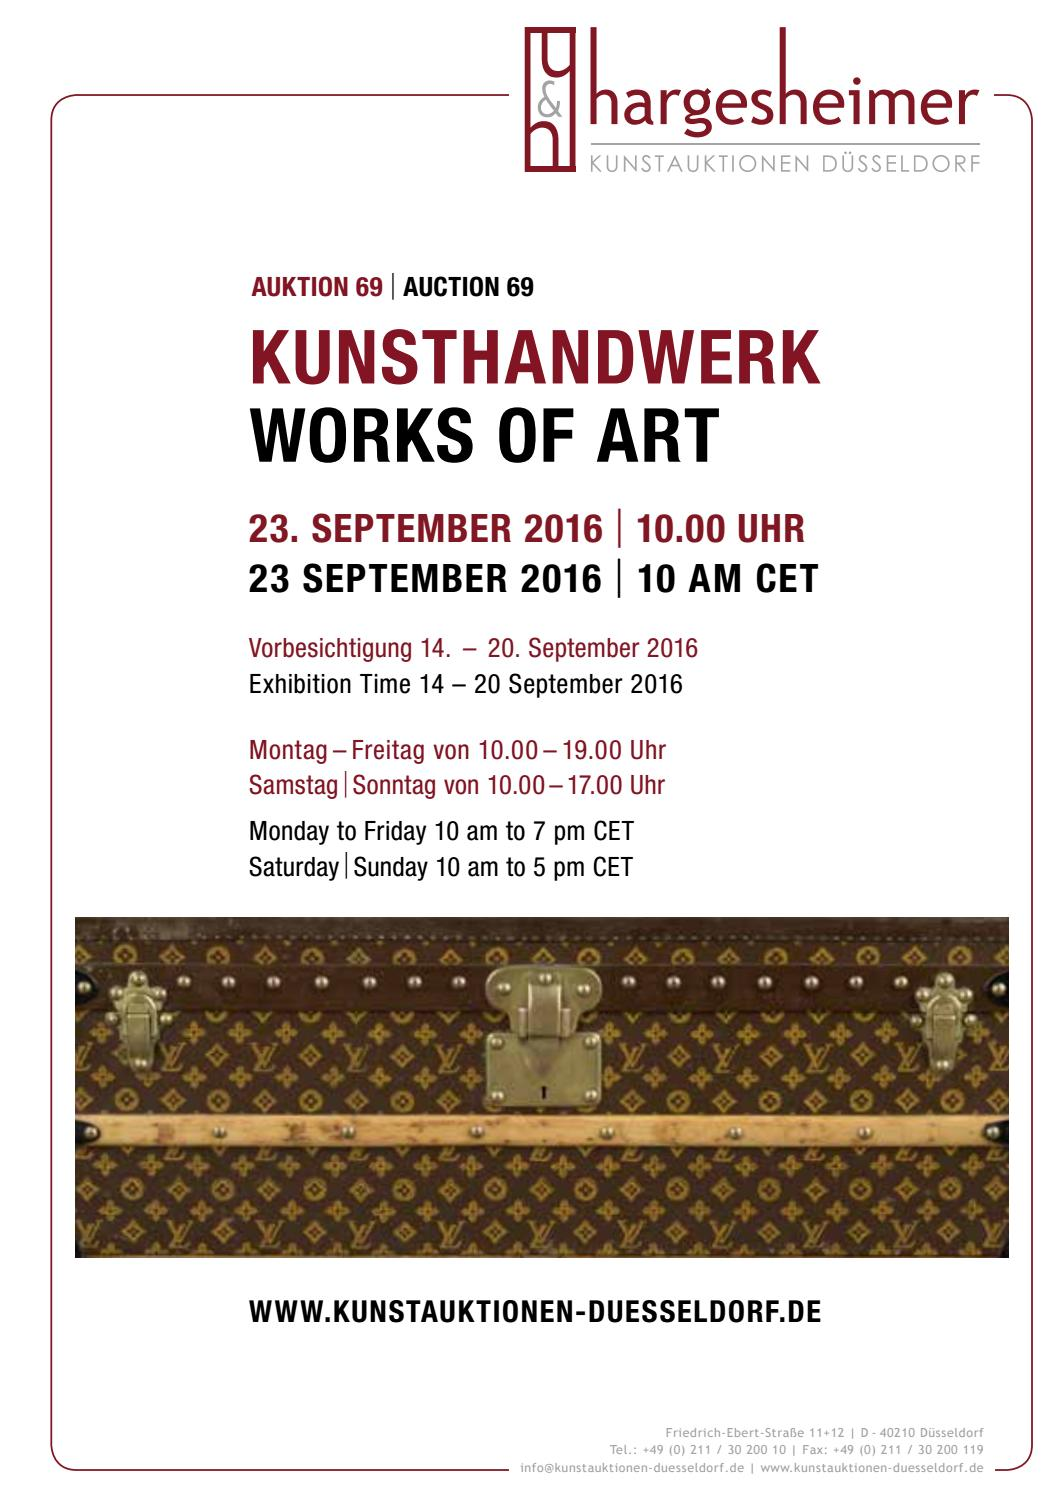 Porzellan Bemalen Tiermotiv Fuchs Teller Porzellankunst 69 Auktion Kunsthandwerk Works Of Art 23 September 2016 By